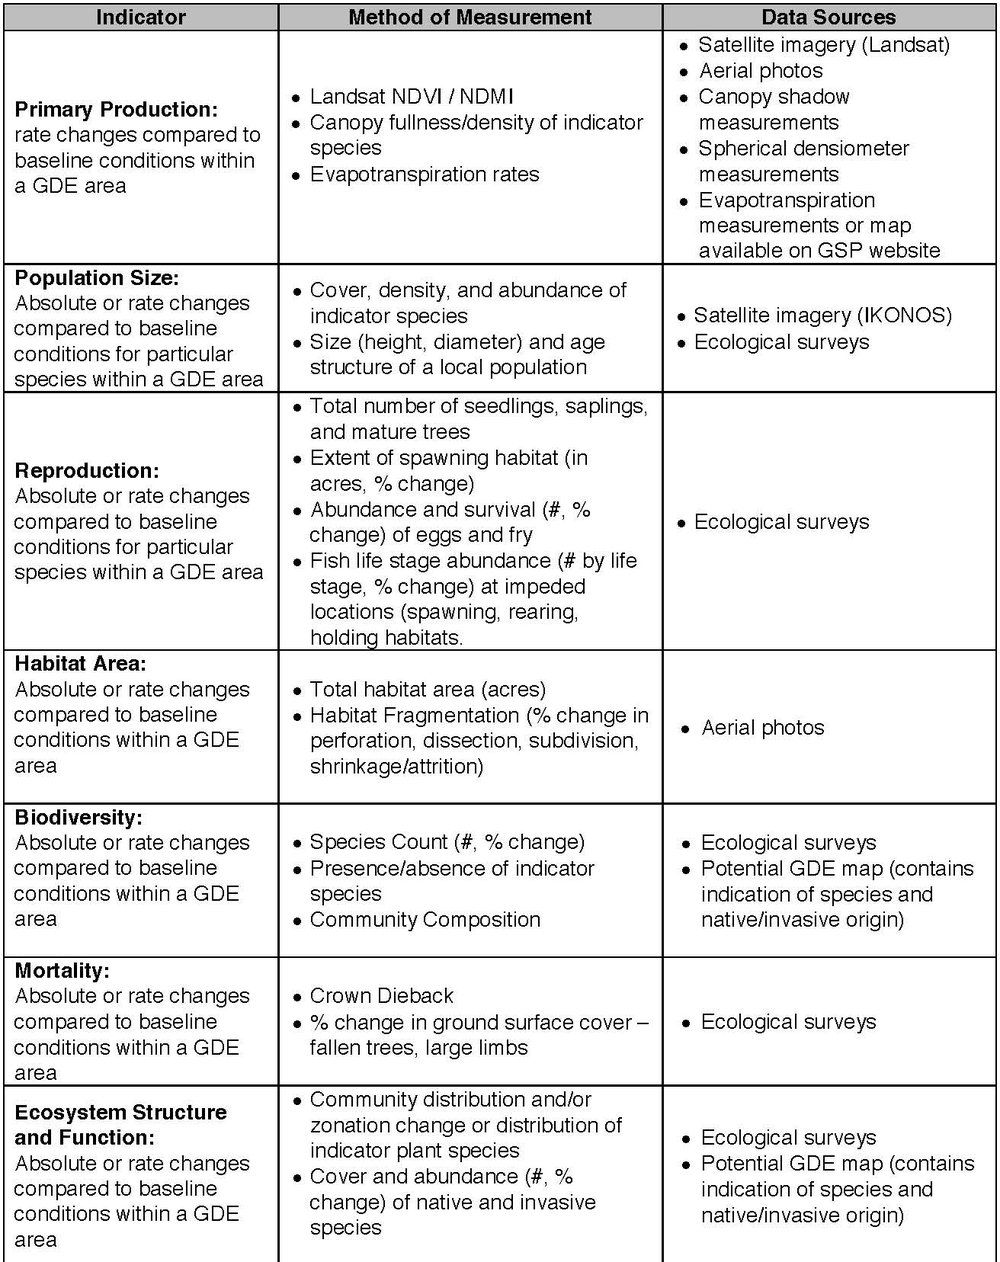 Table 1. Potential indicators for evaluating the health of an ecosystem.